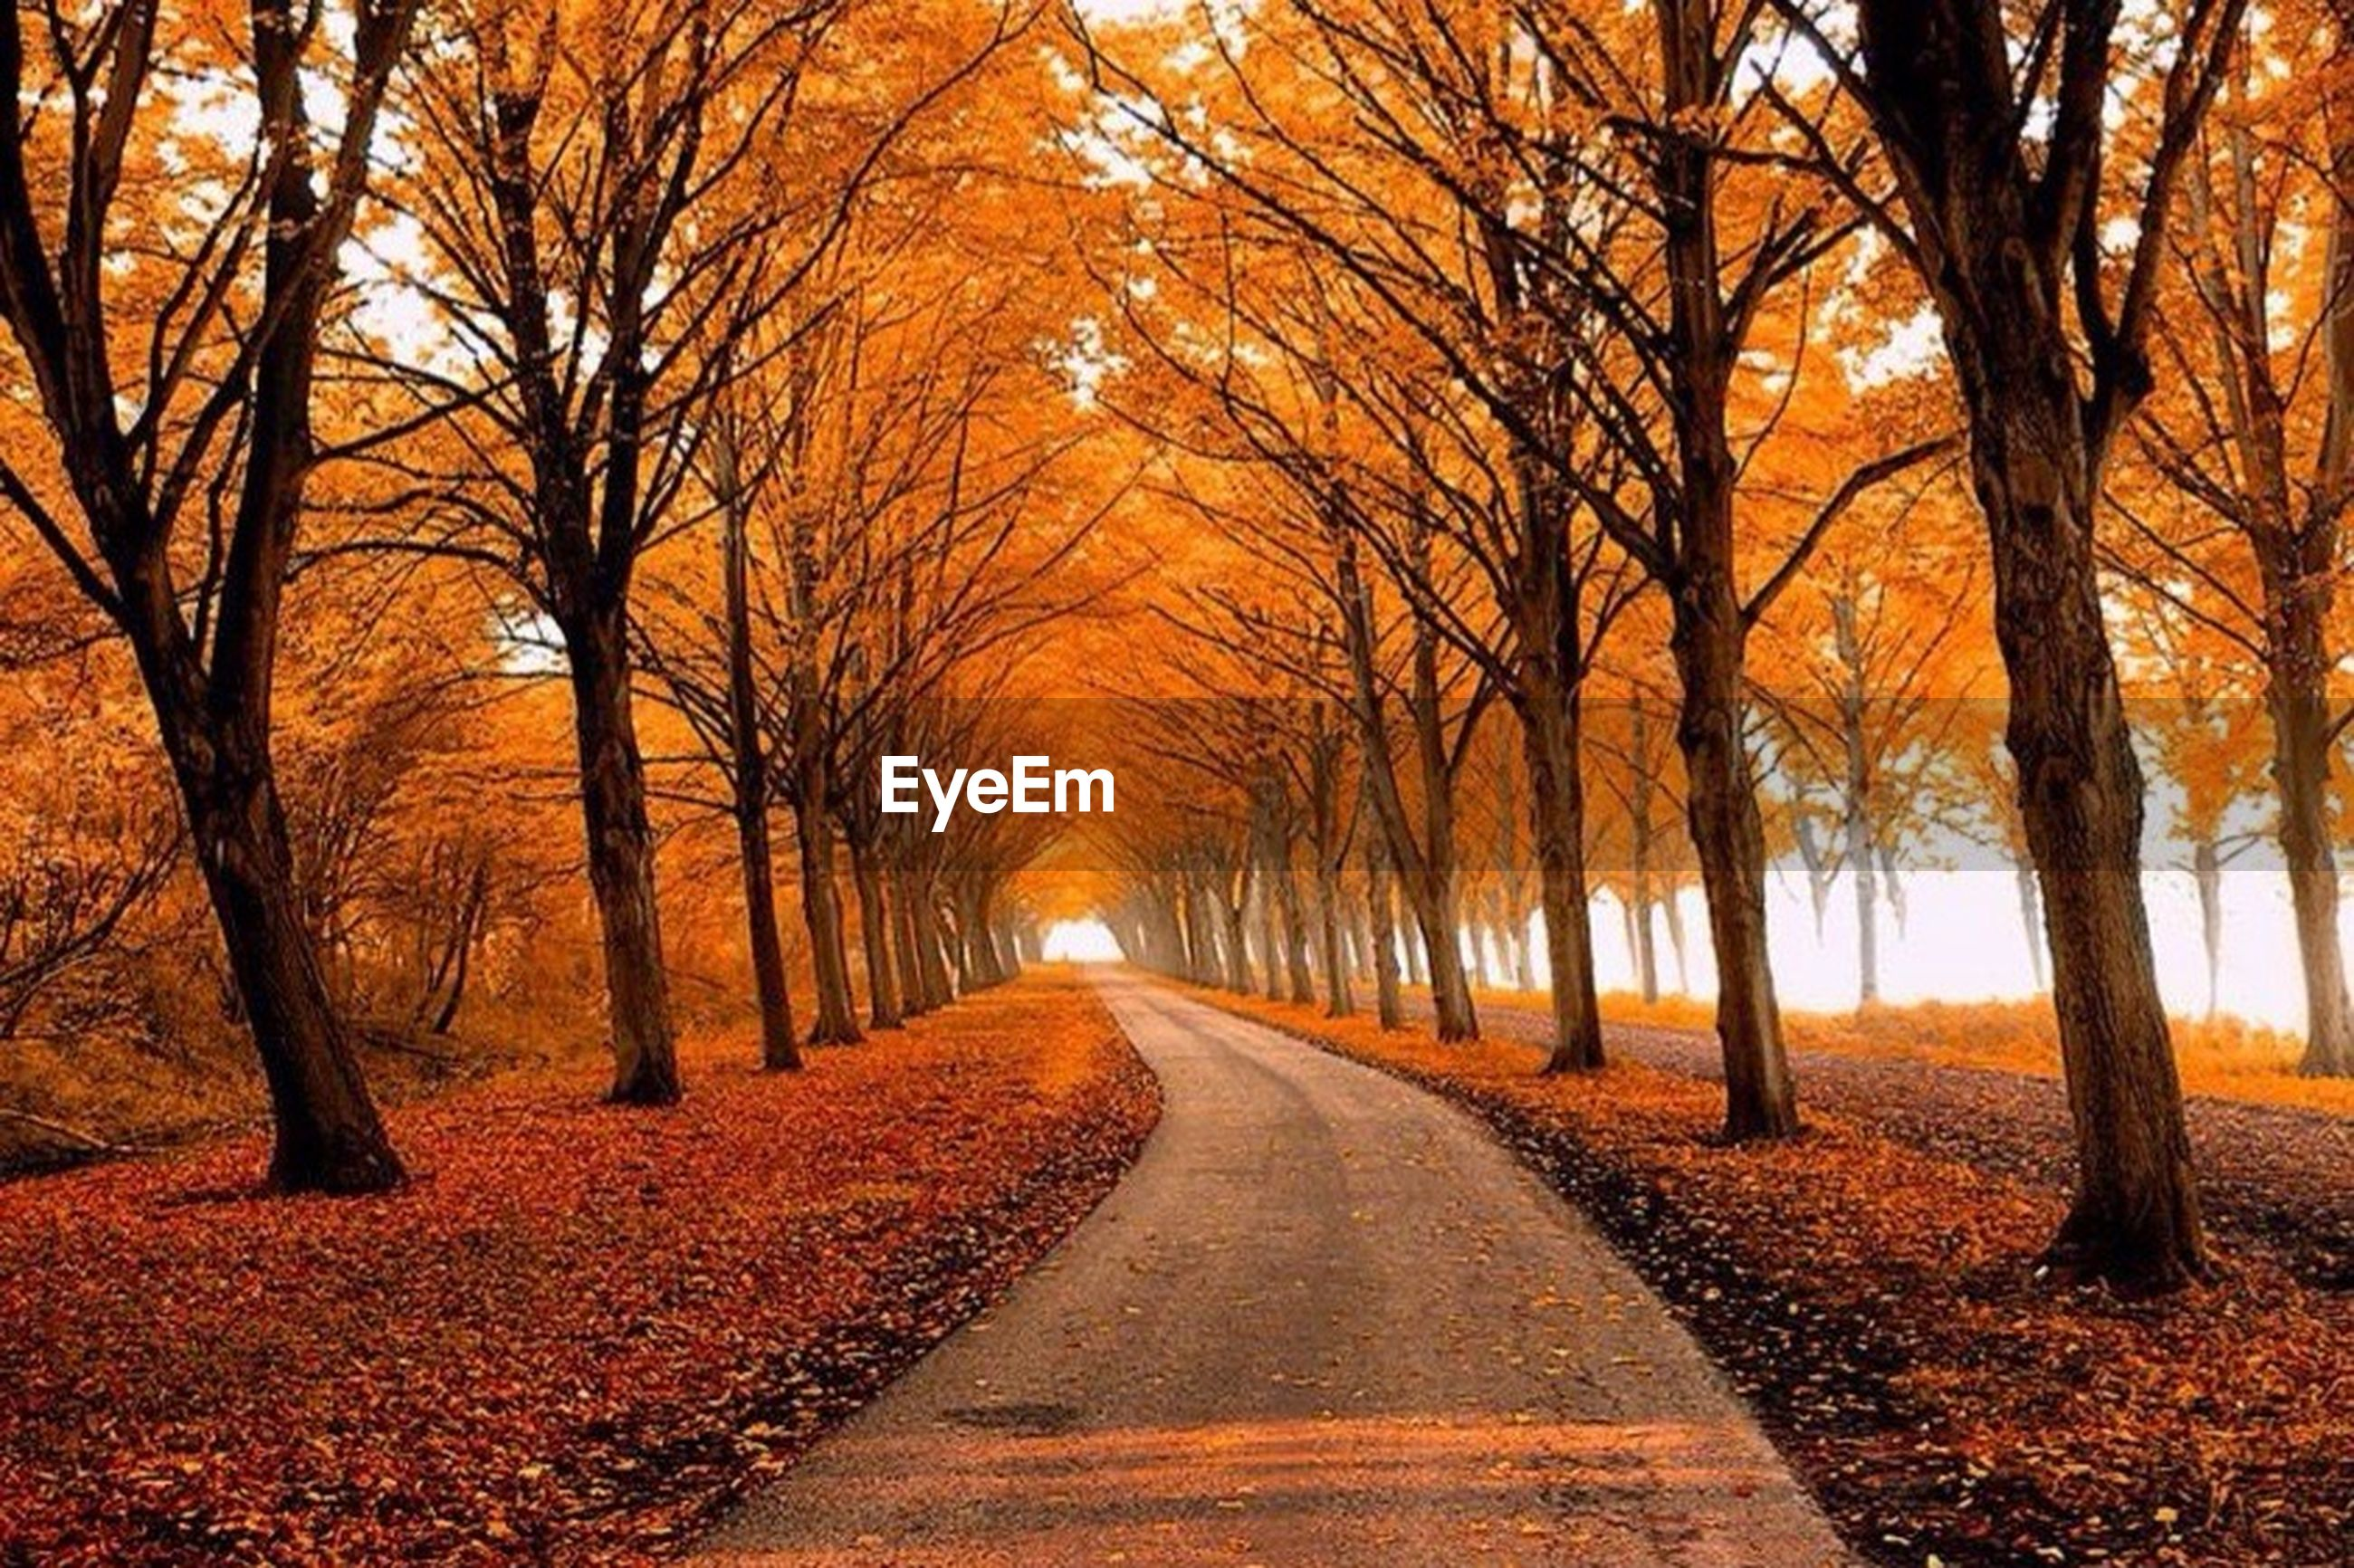 the way forward, tree, diminishing perspective, vanishing point, transportation, road, bare tree, sunset, orange color, tranquility, tranquil scene, nature, treelined, autumn, country road, beauty in nature, scenics, empty road, tree trunk, branch